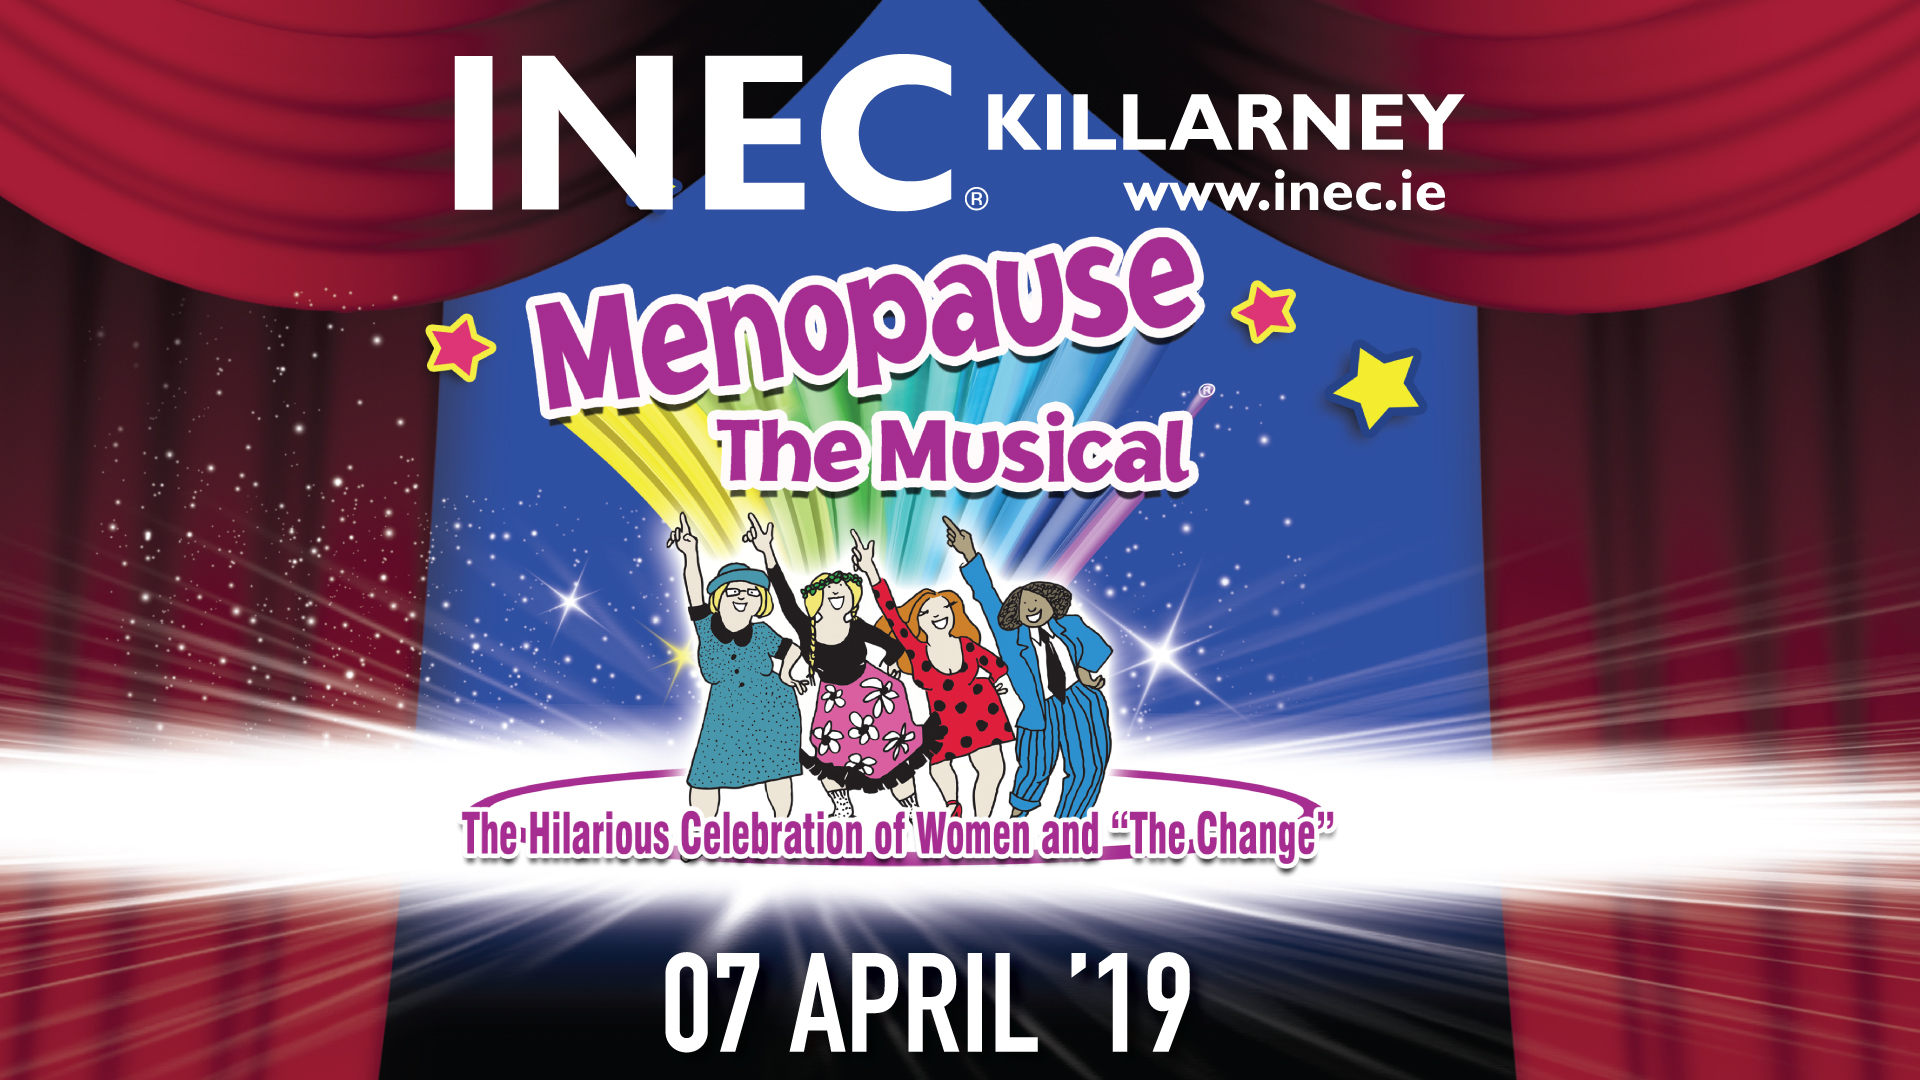 Menopause the Musical comes to the INEC Killarney on 7th April 2019